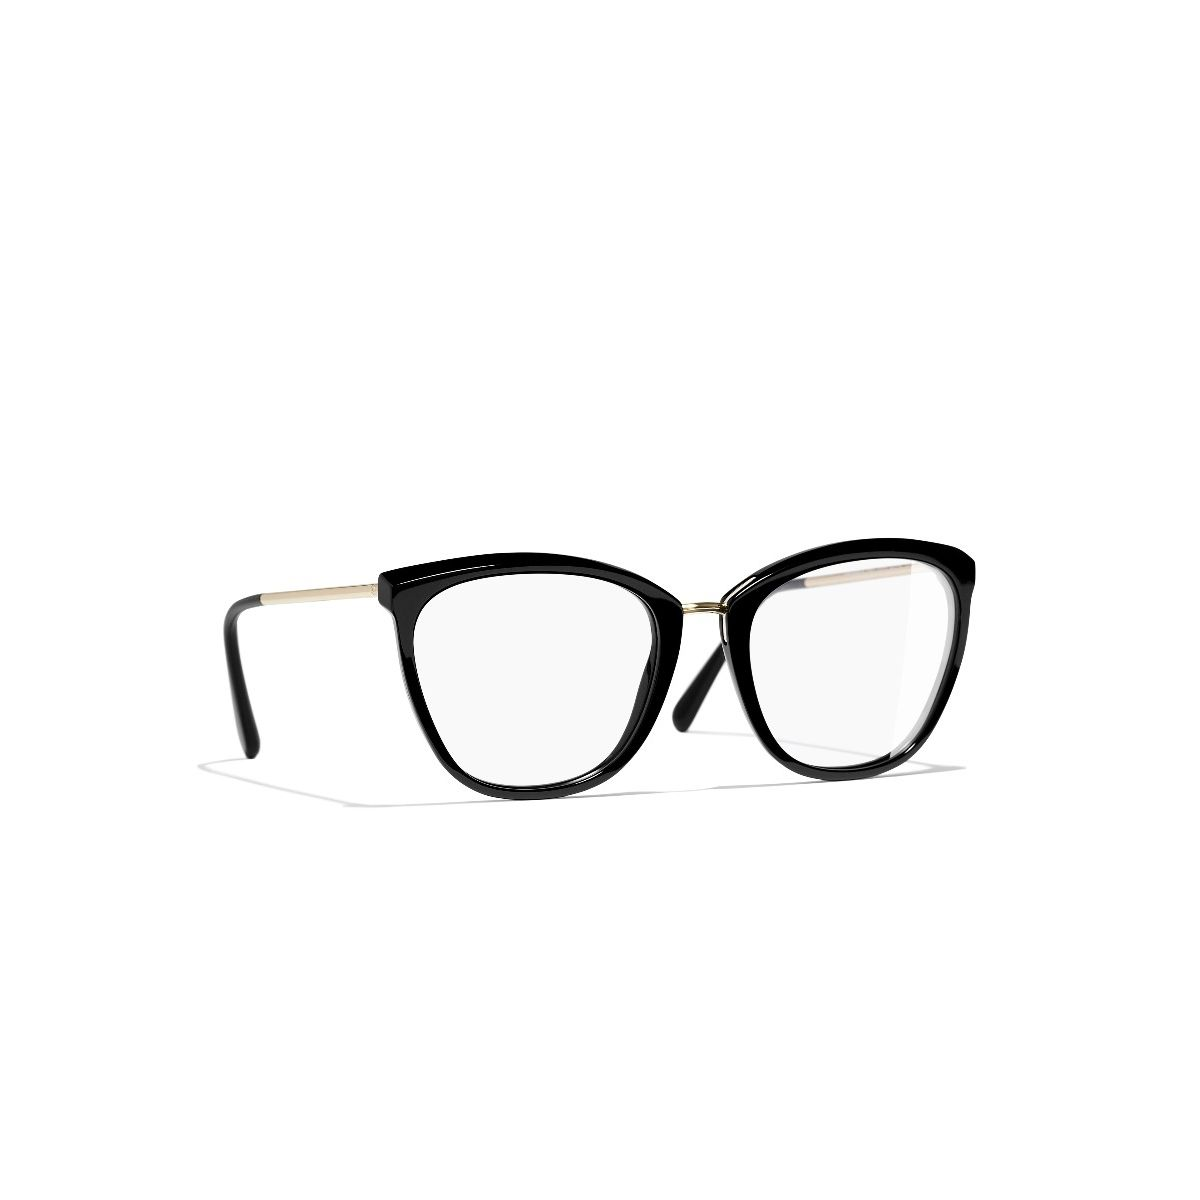 Butterfly Eyeglasses 256 Optical